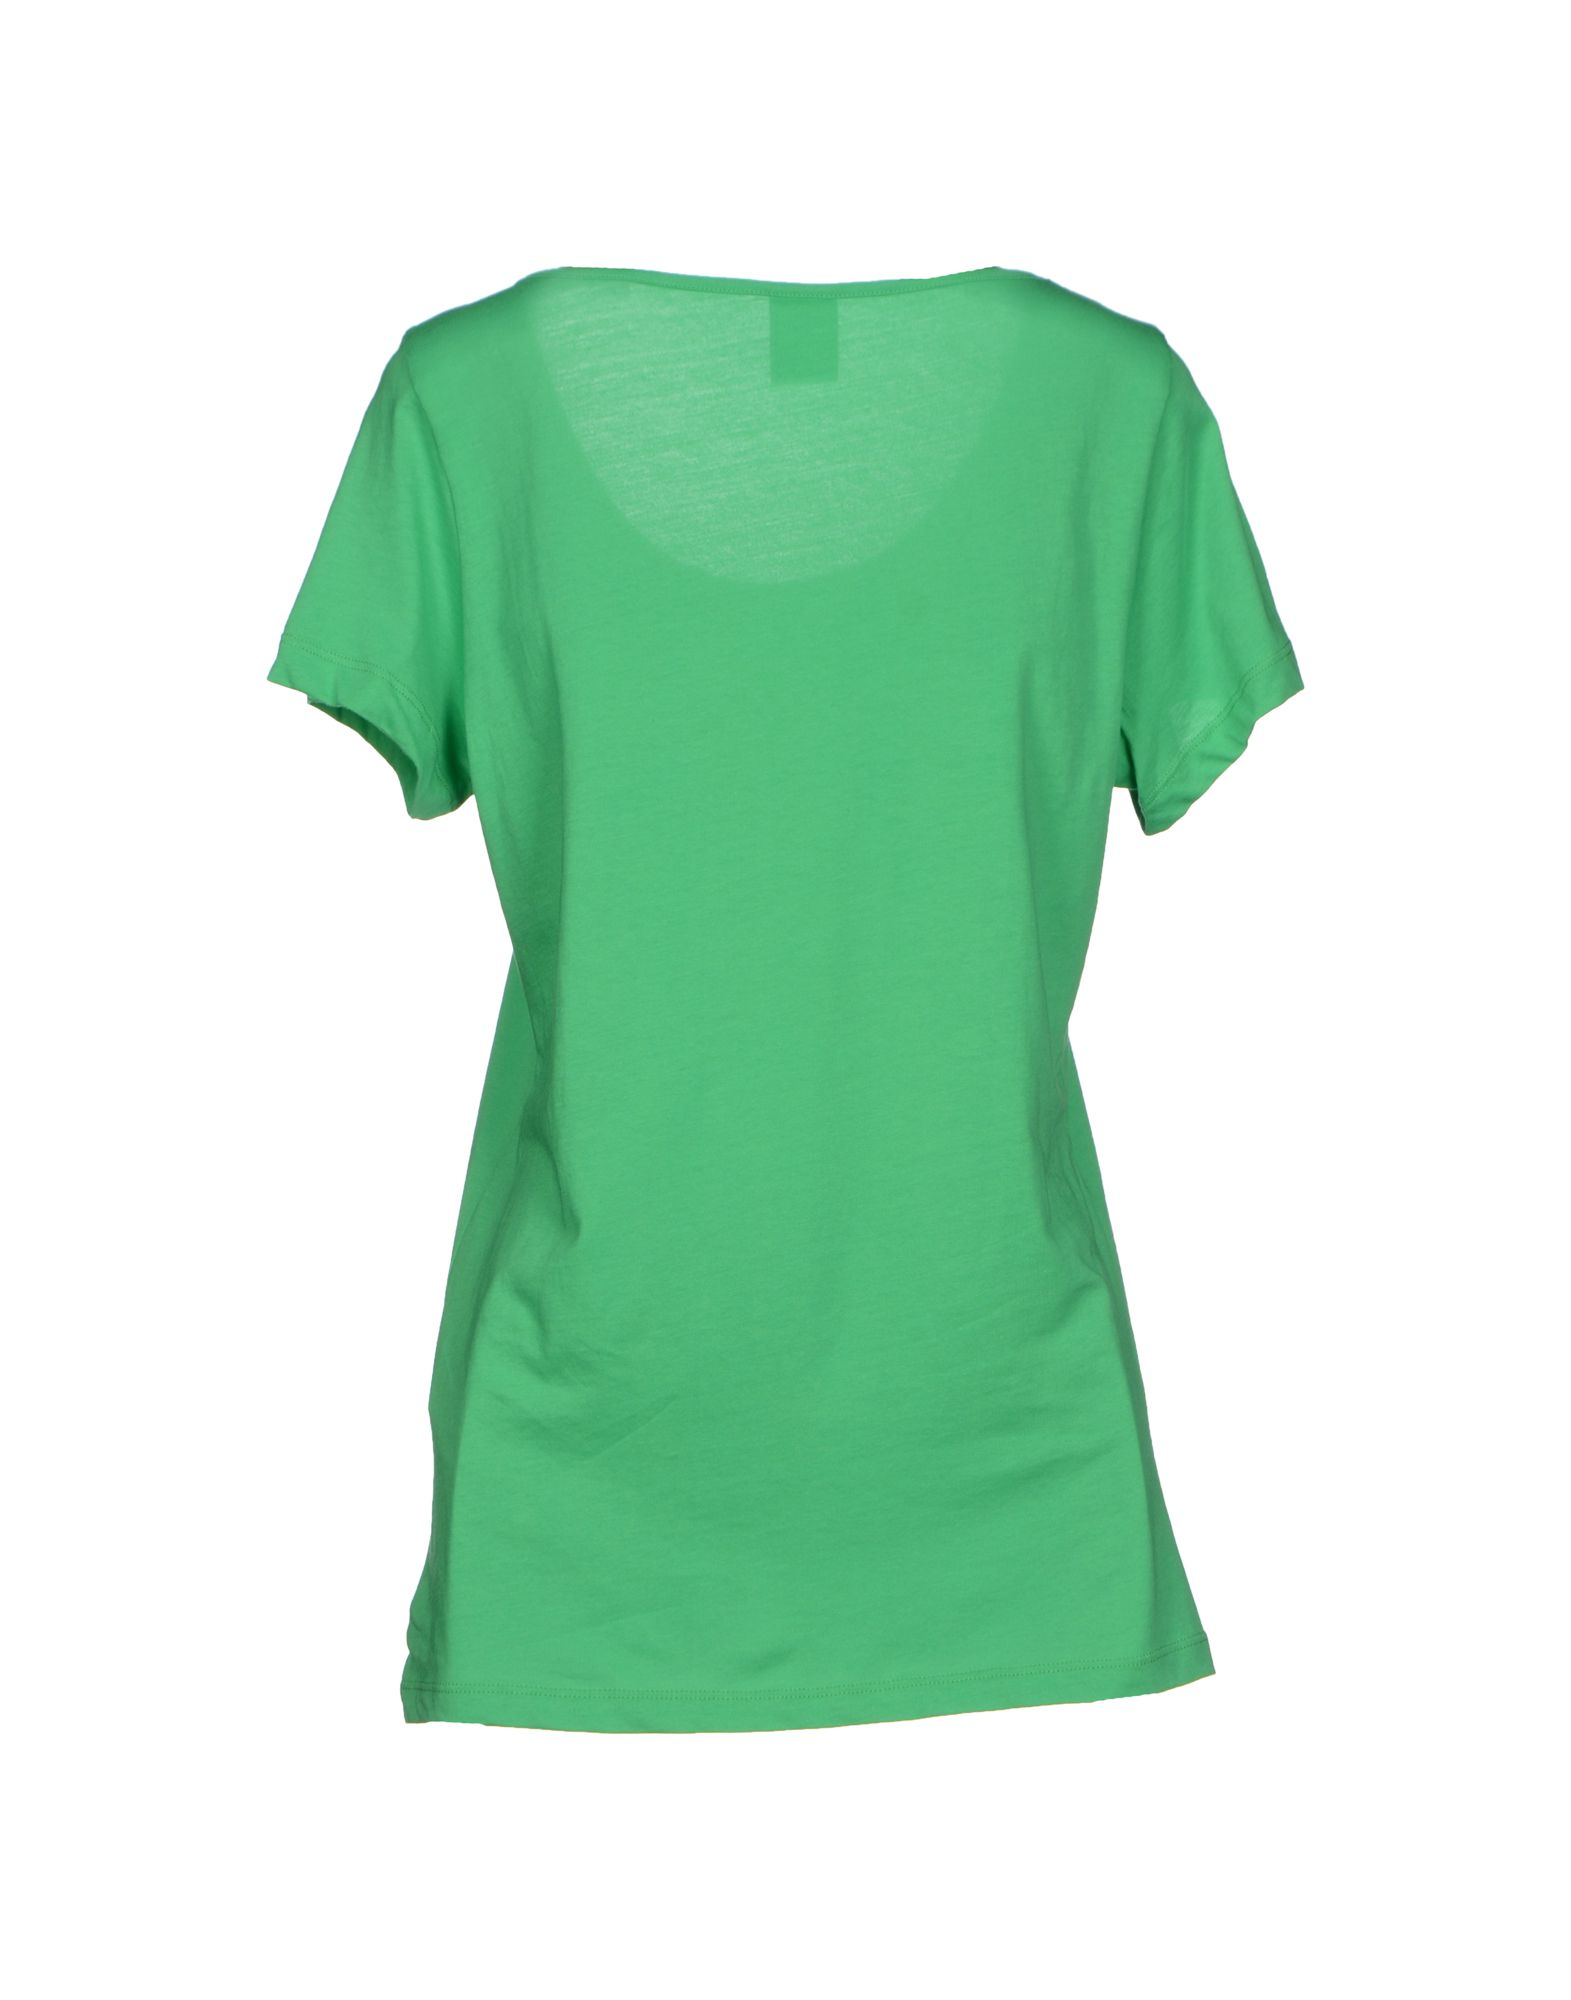 vero moda t shirt in green lyst. Black Bedroom Furniture Sets. Home Design Ideas